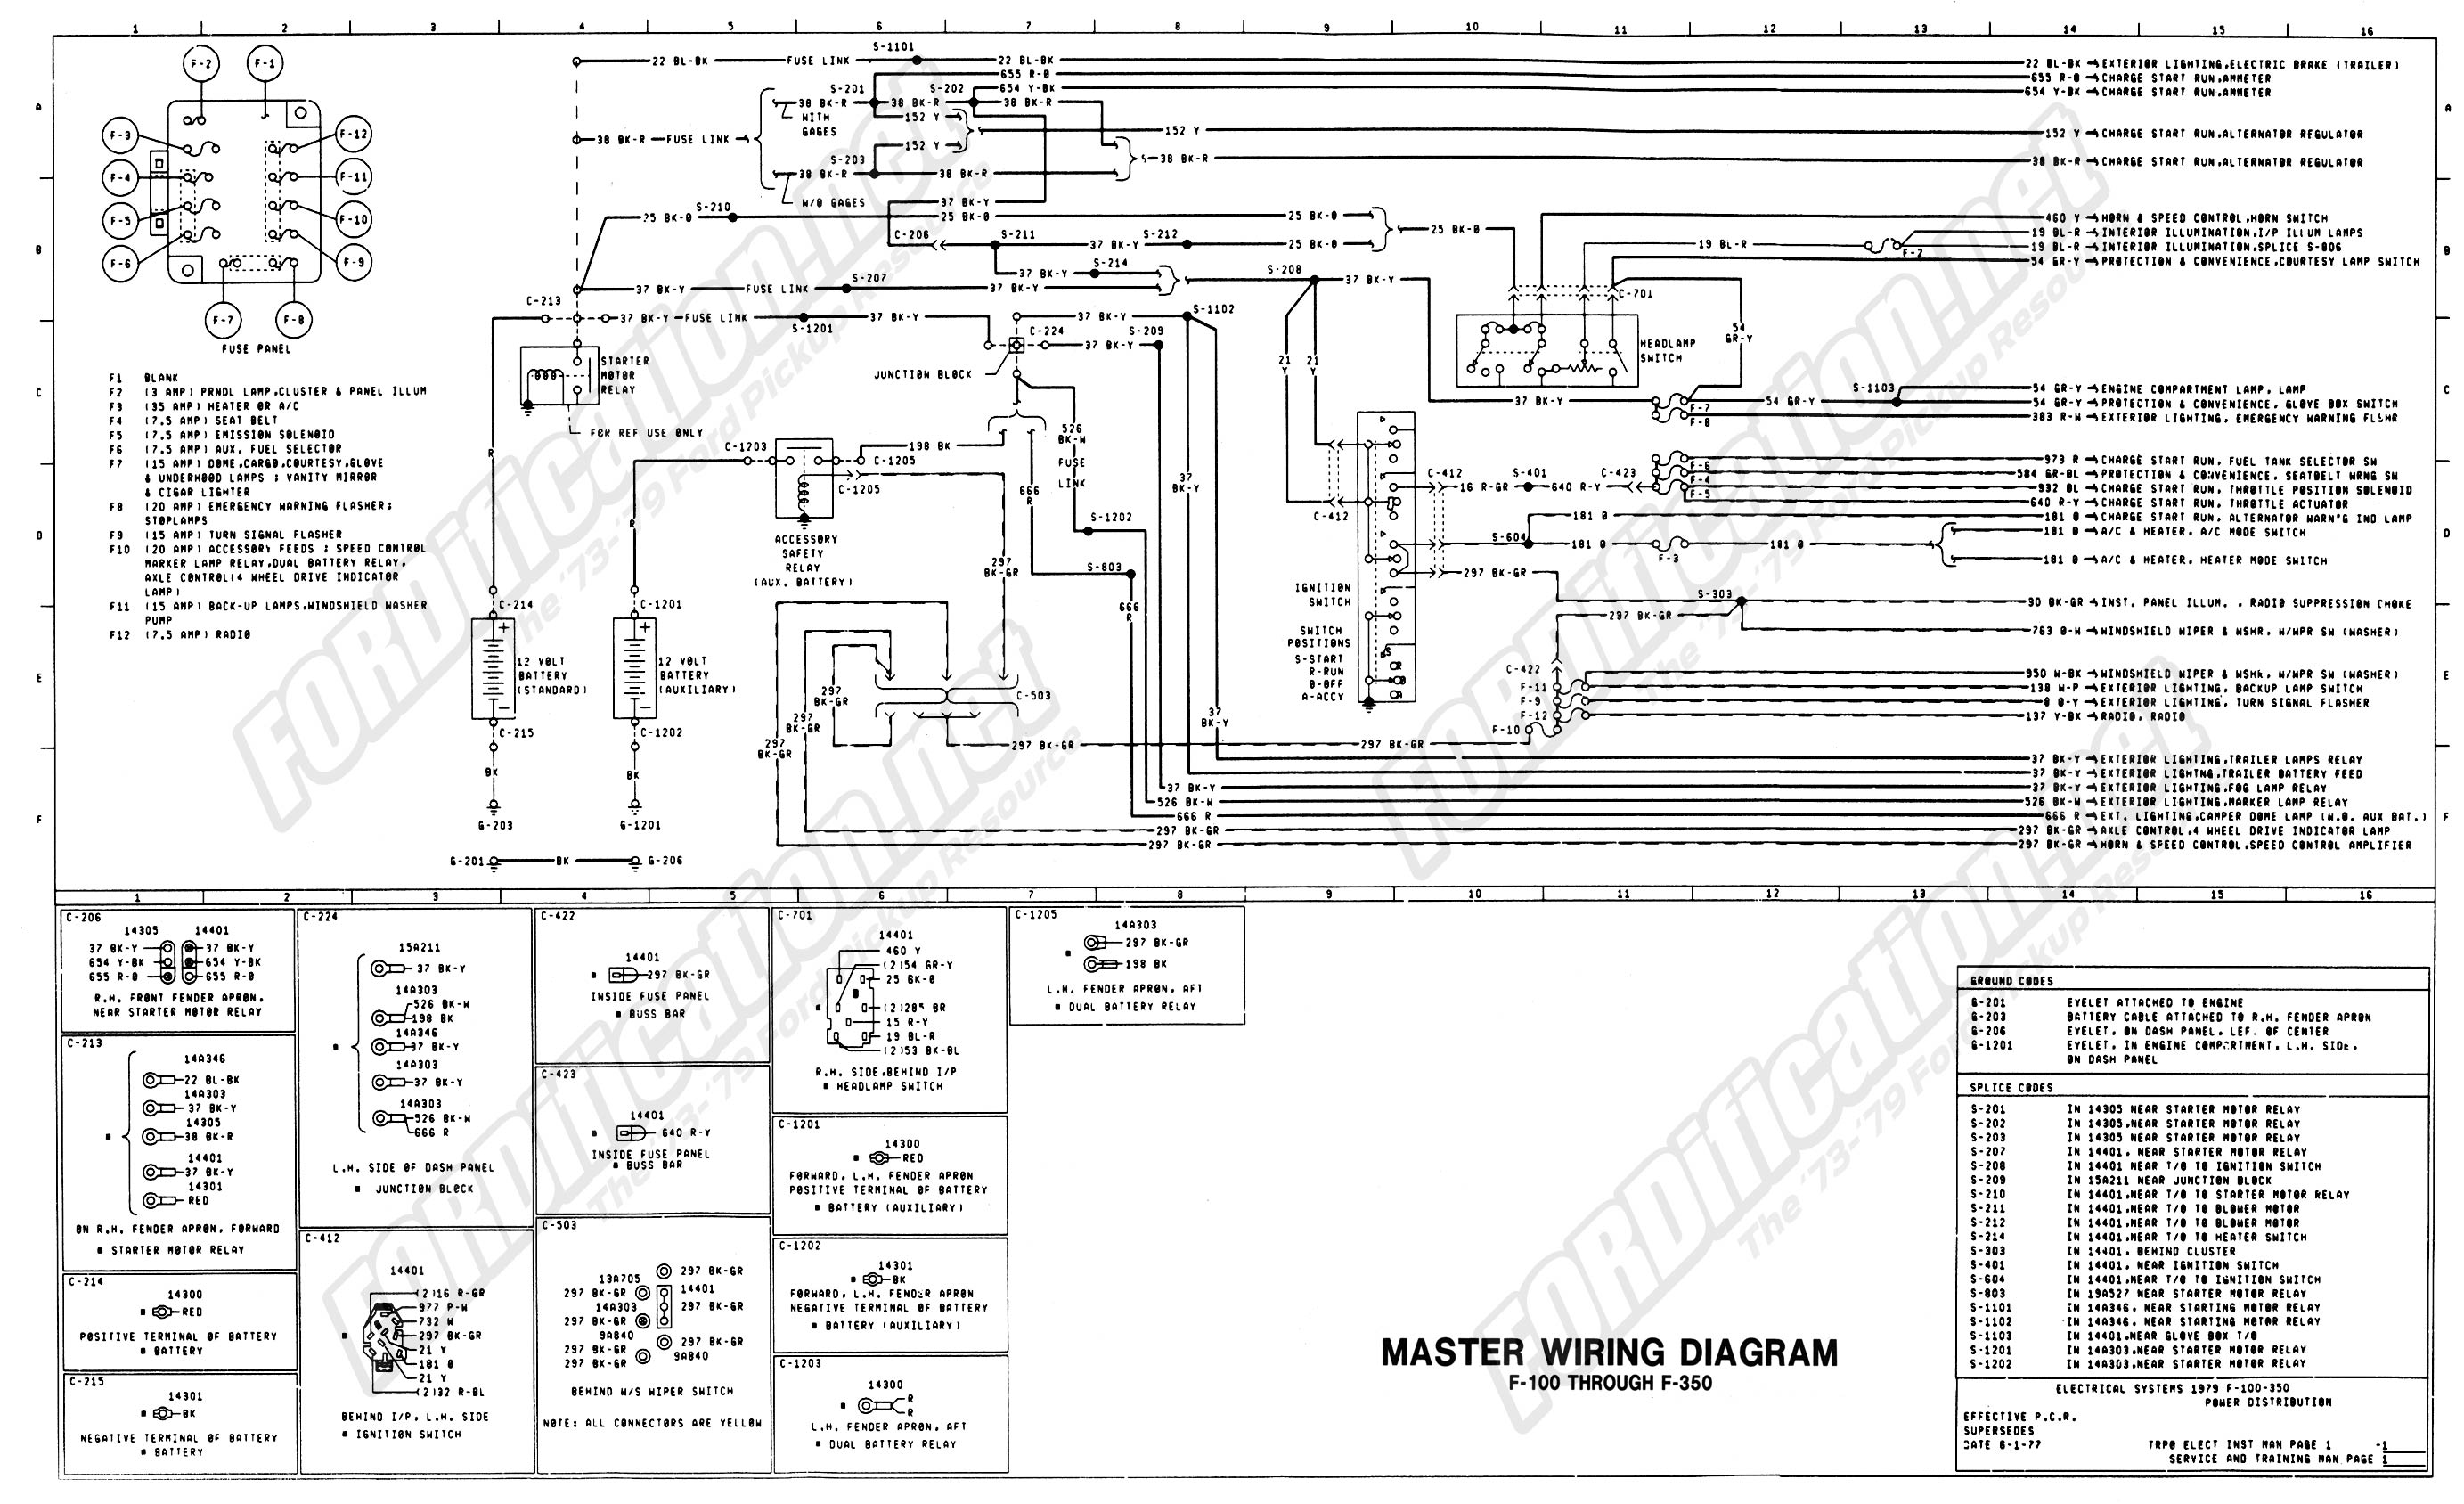 wiring_79master_1of9 1973 1979 ford truck wiring diagrams & schematics fordification net 1979 ford truck fuse box diagram at pacquiaovsvargaslive.co